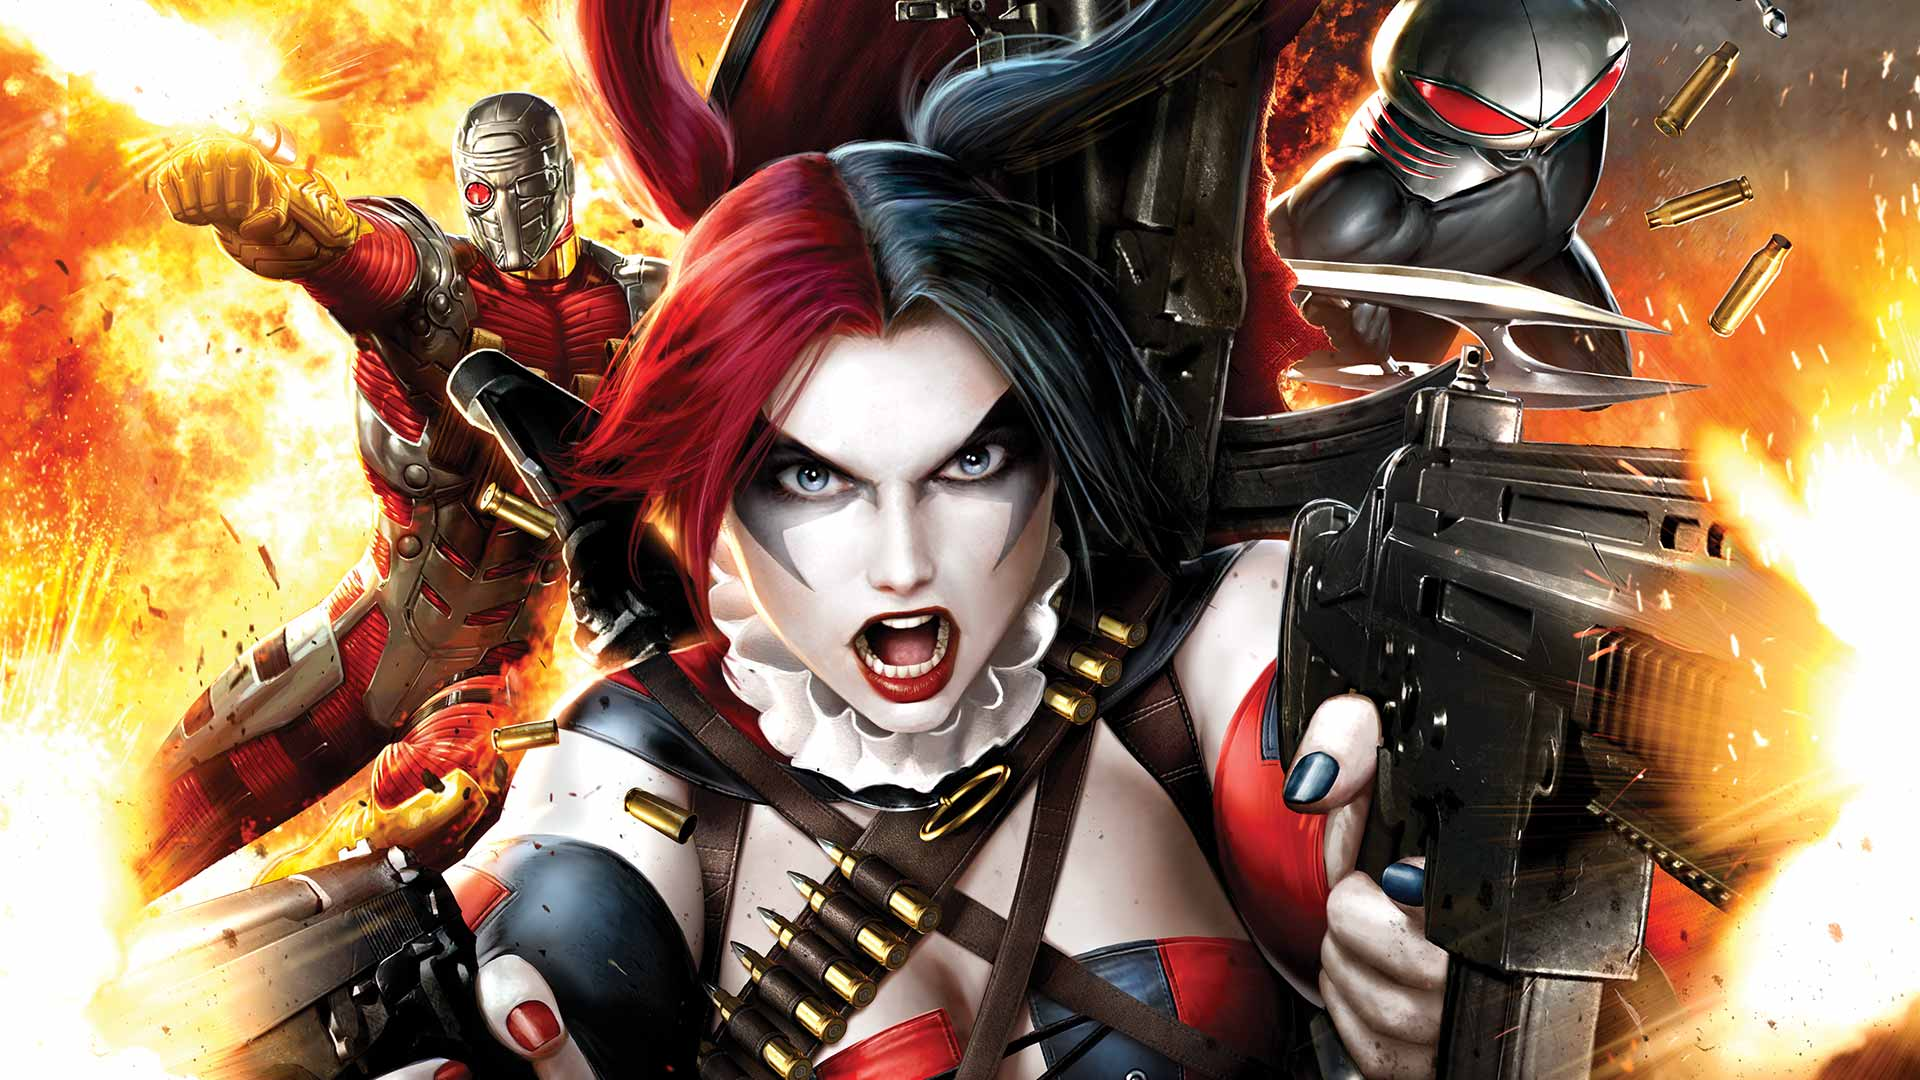 Deadshot and Harley Quinn on the cover of Suicide Squad #4